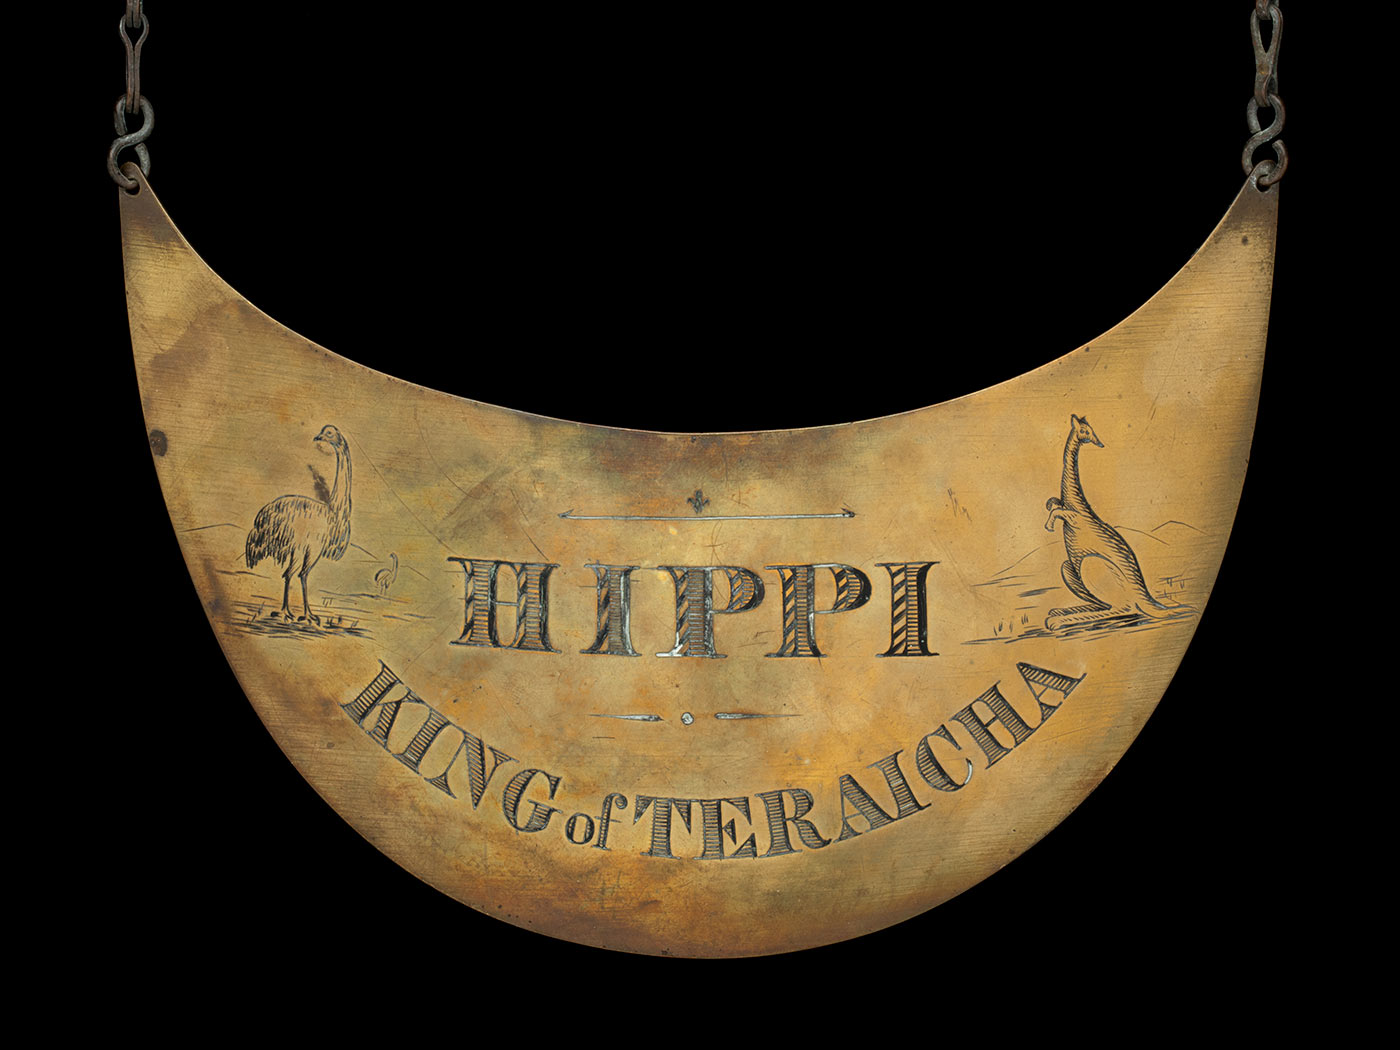 Engraved breastplate that reads 'Hippi, King of King of Teraicha' and includes images  of an emu and kangaroo. - click to view larger image